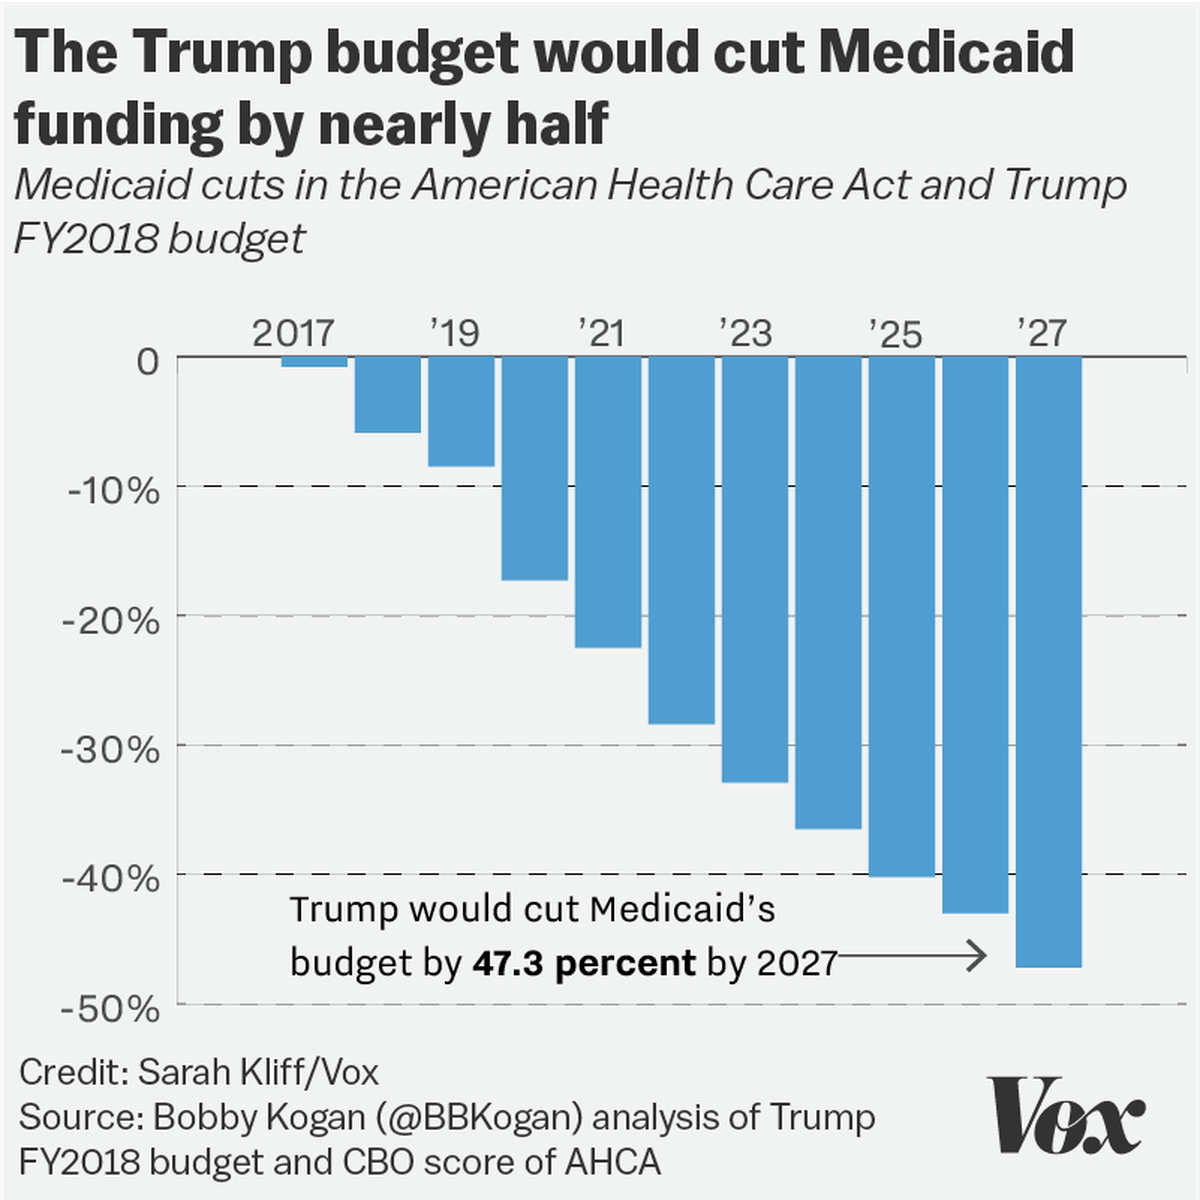 Policy Politics On Flipboard By Vox: Trump's Budget Would Cut Medicaid Funding Nearly In Half